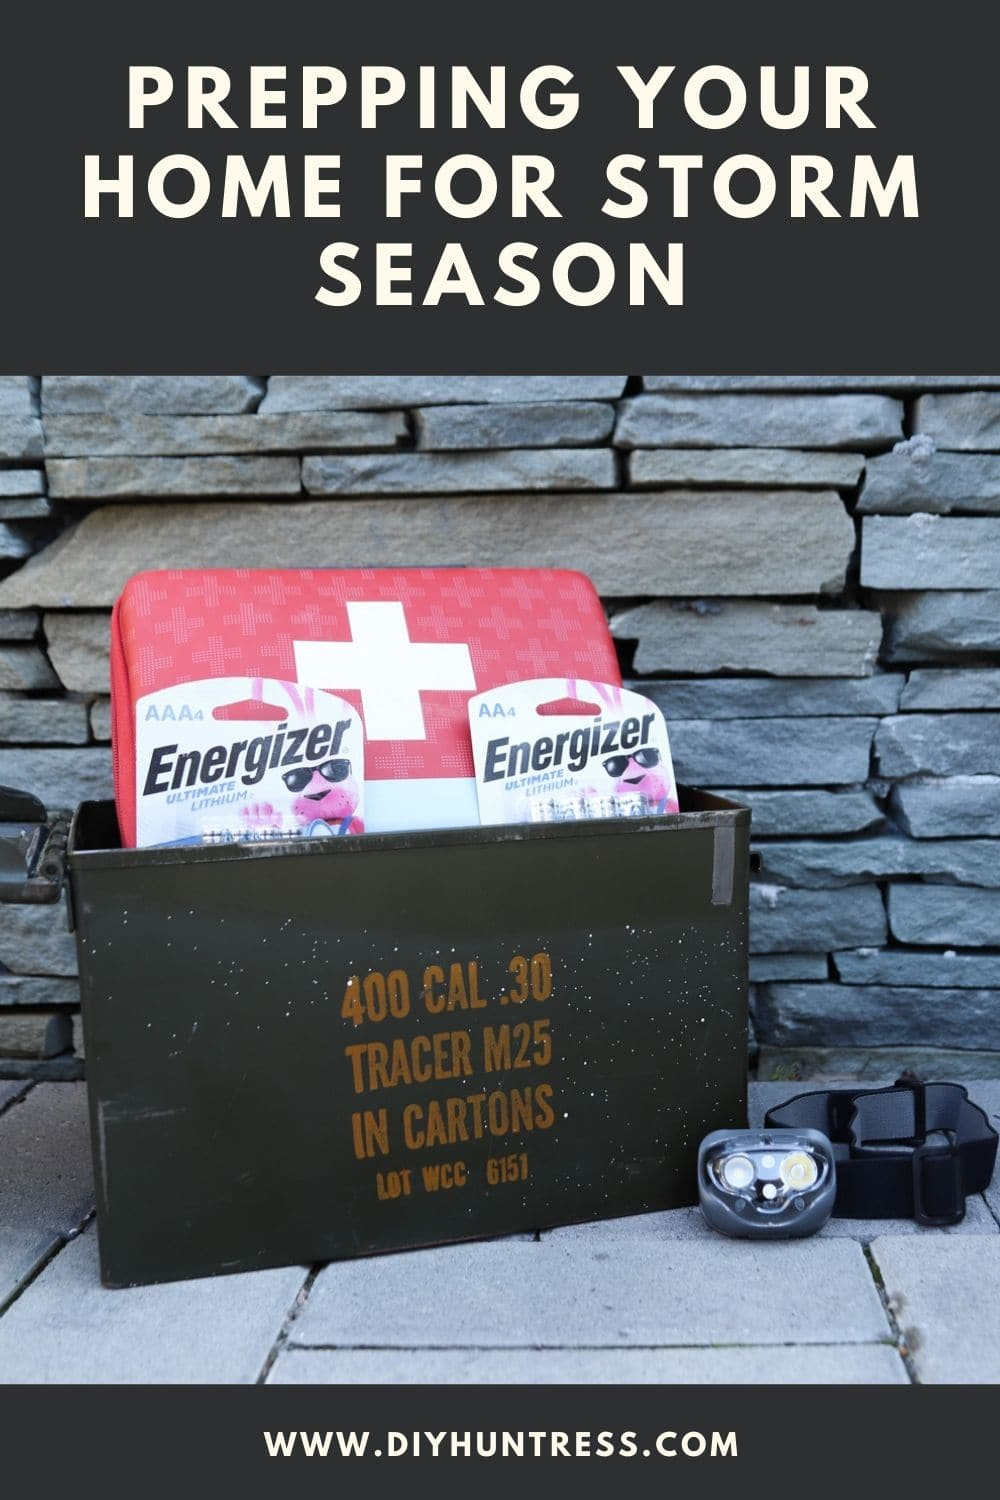 #ad This year marks 8 years since Hurricane Sandy hit. Gear up for storm season with @energizer's easy-to-use, long-lasting headlamp from @amazon. I rely on Energizer® to provide reliable light when I need it most. #PrepareWithEnergizer Shop it on Amazon: https://bit.ly/3bHRdNz